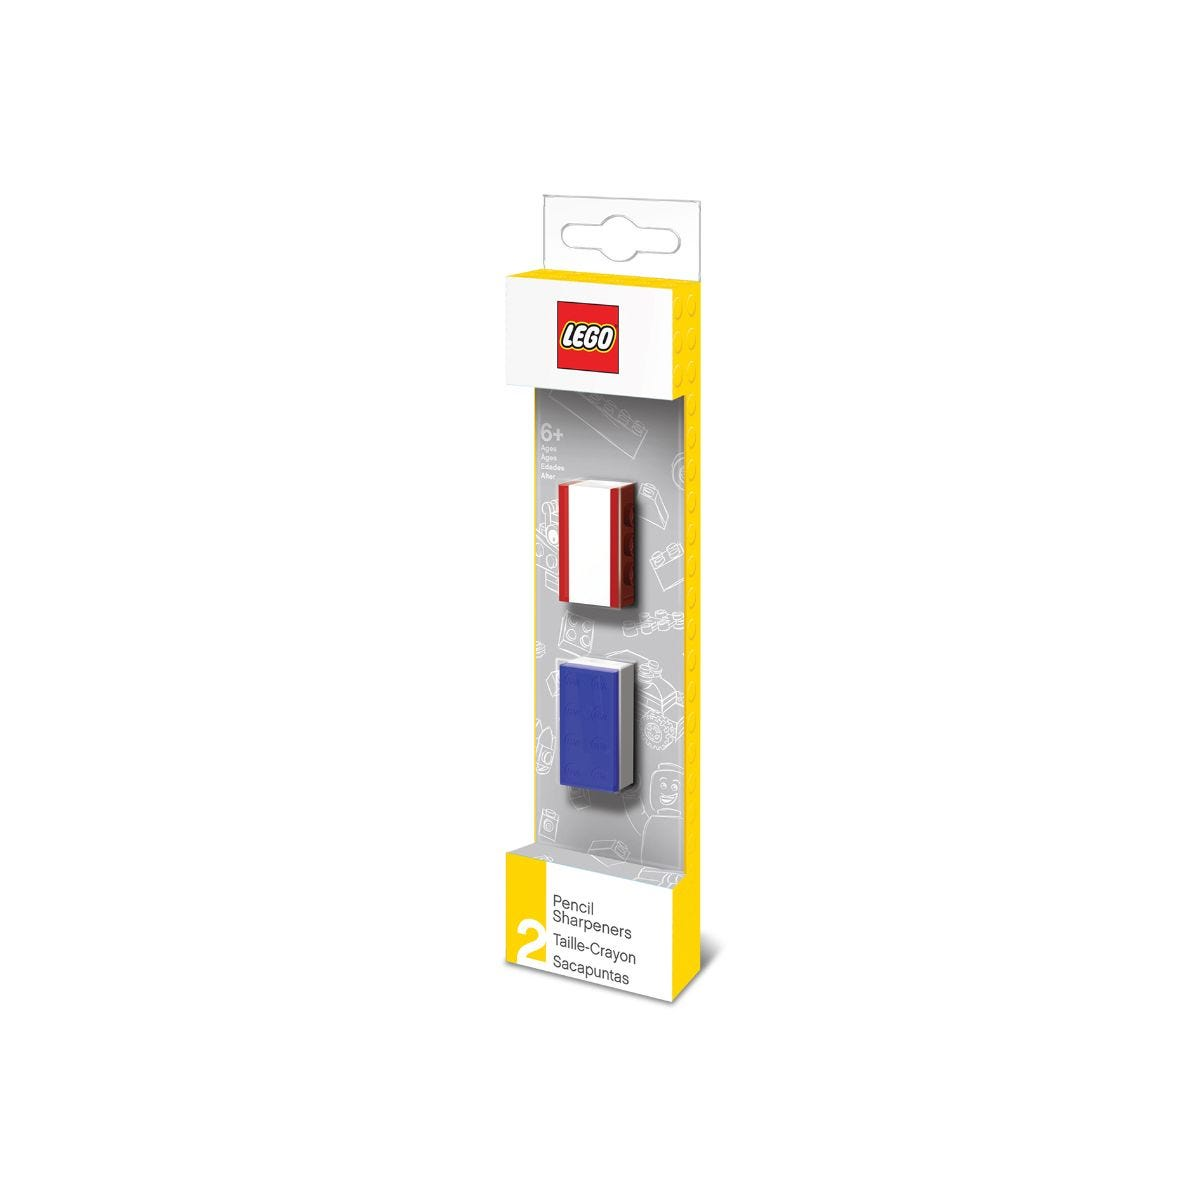 LEGO Pencil Sharpener Pack 2